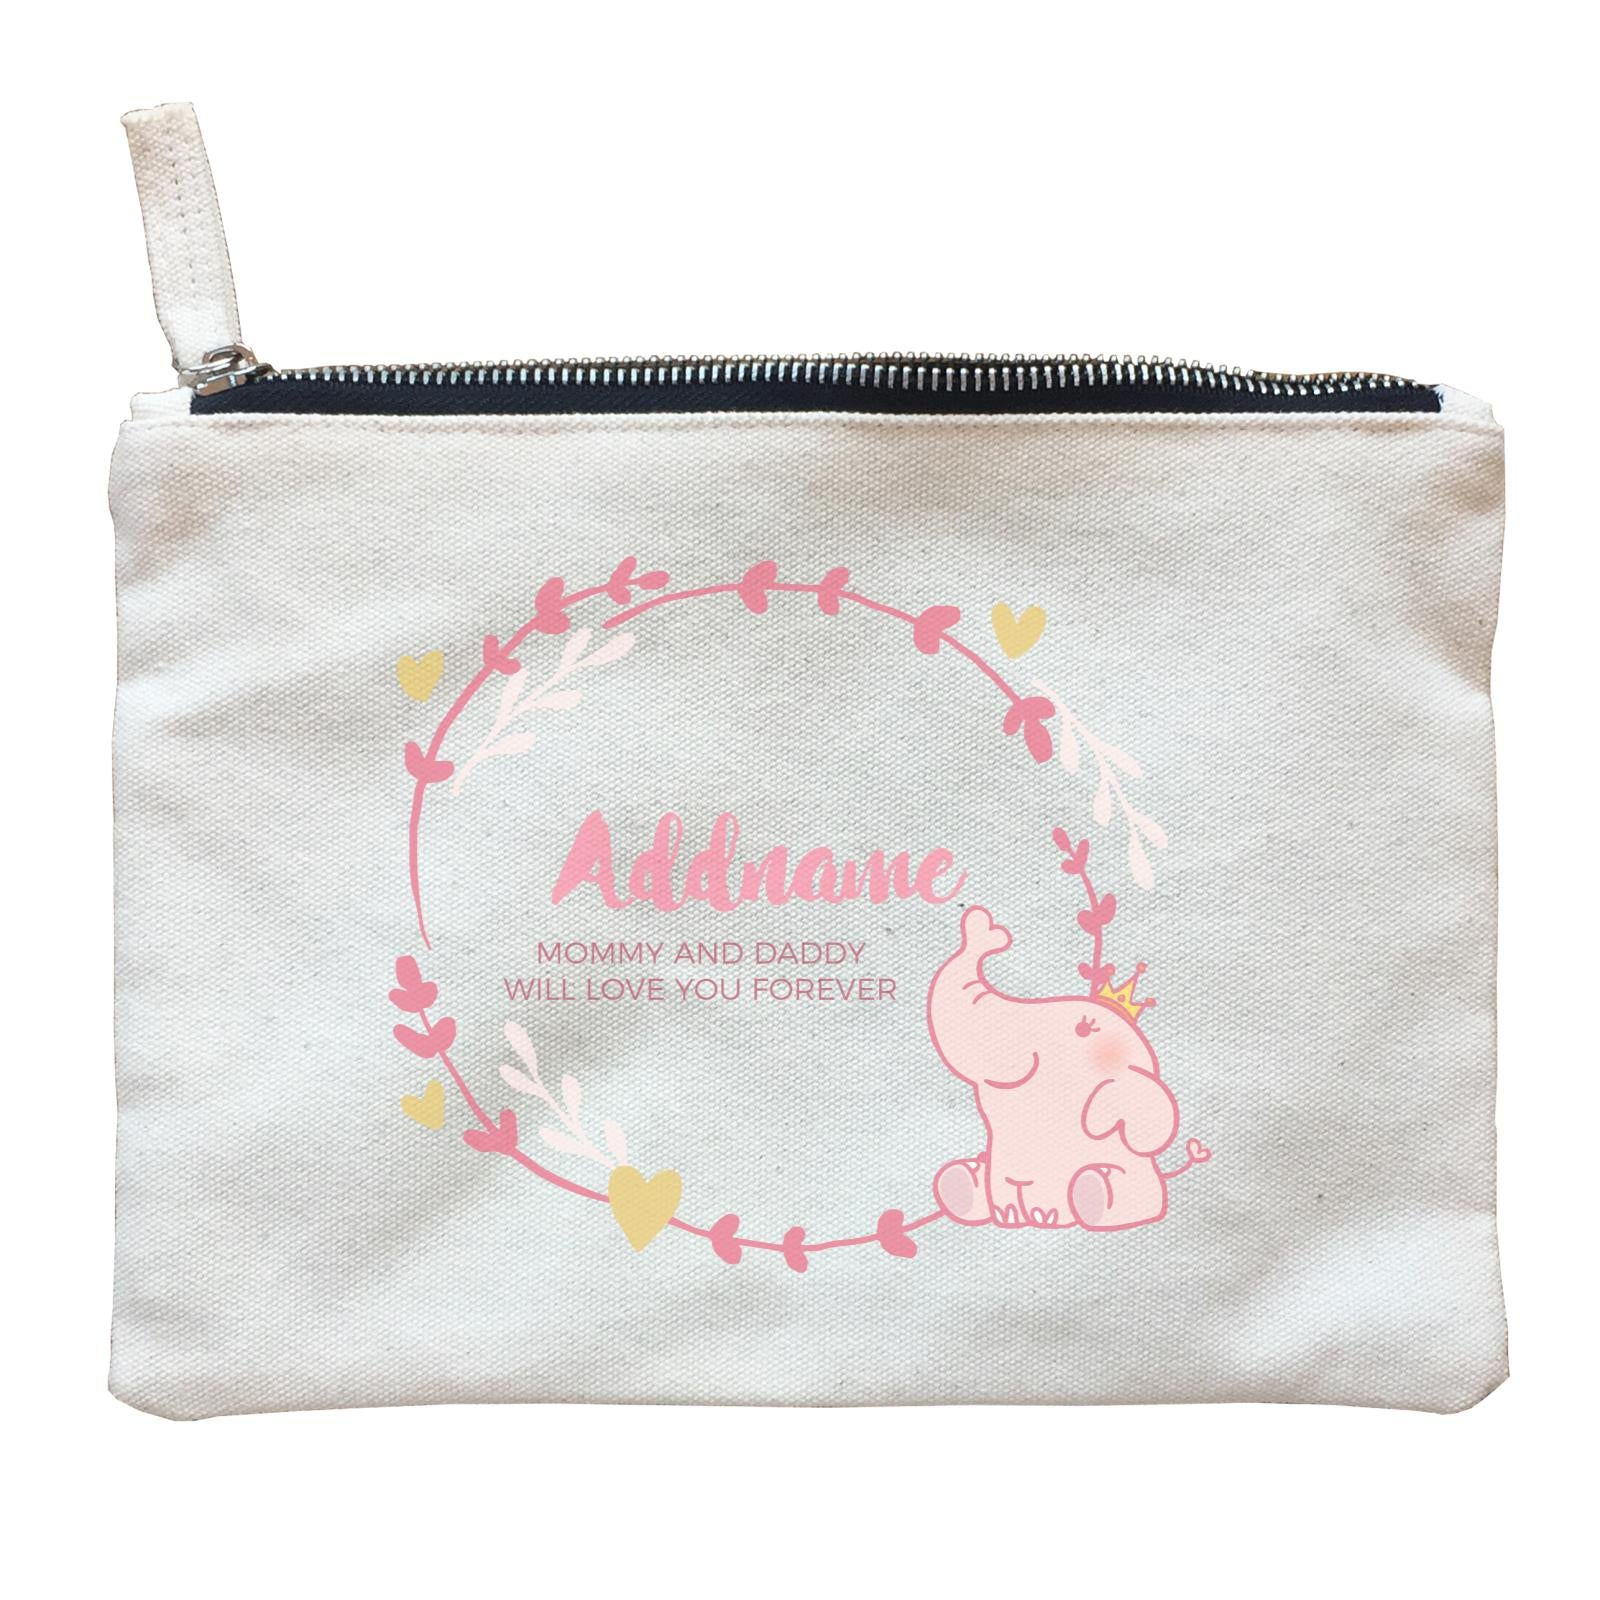 Cute Pink Elephant Princess Personalizable with Name and Text Zipper Pouch